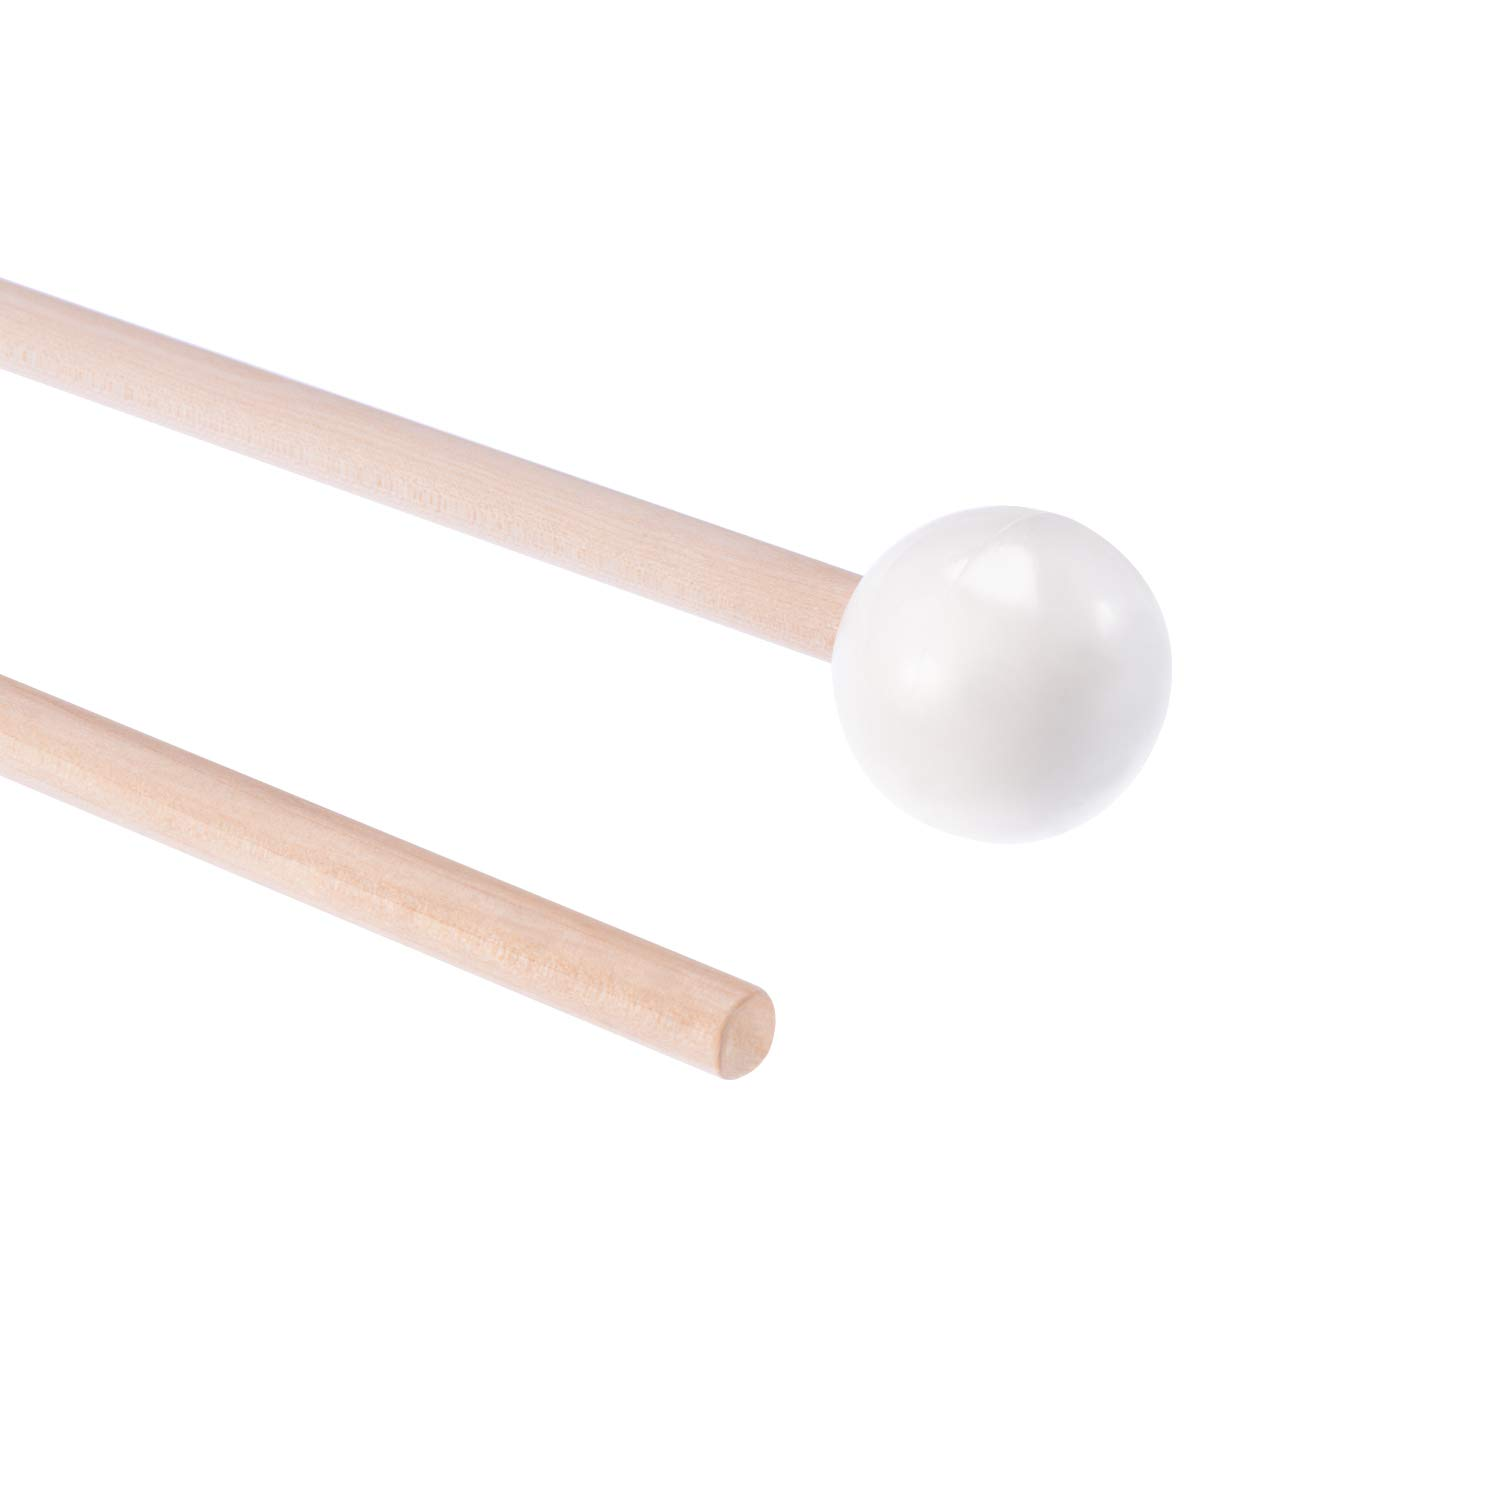 Fanrel 1 Pair of Hard Rubber Mallets Glockenspiel Sticks with Wood Handle for Energy Chime, Xylophone, Wood Block, and Bells(White) 51XW2BkrtfSL